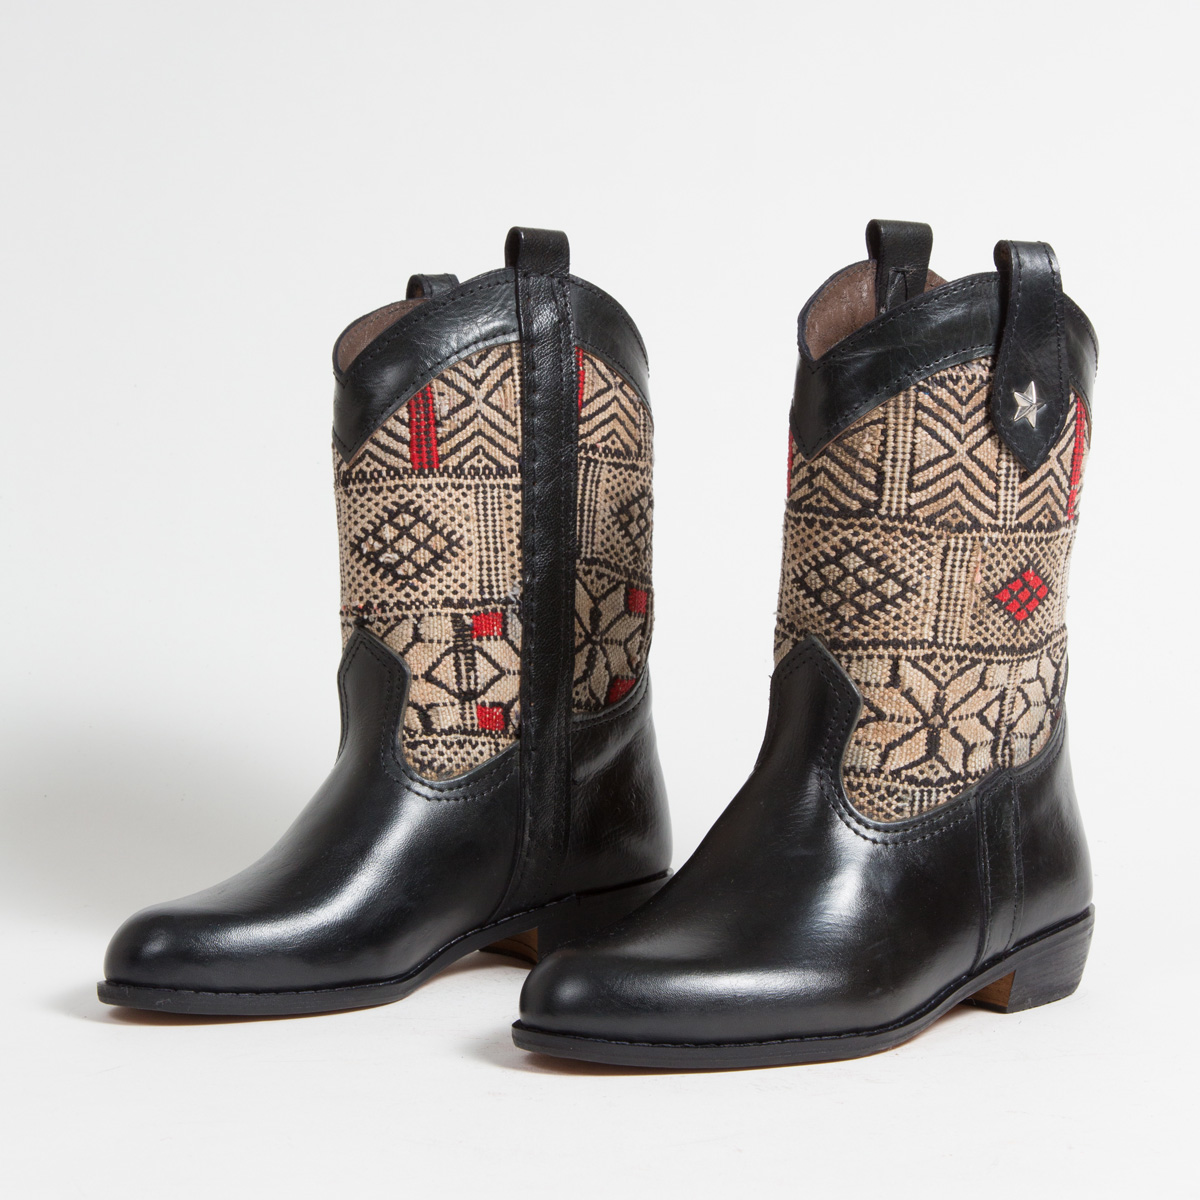 Bottines Kilim - images/kilim/bottines/mn3-01-37-kilim-artisanat-cuir-ethnique-marocaine-bottine-femme-s.jpg